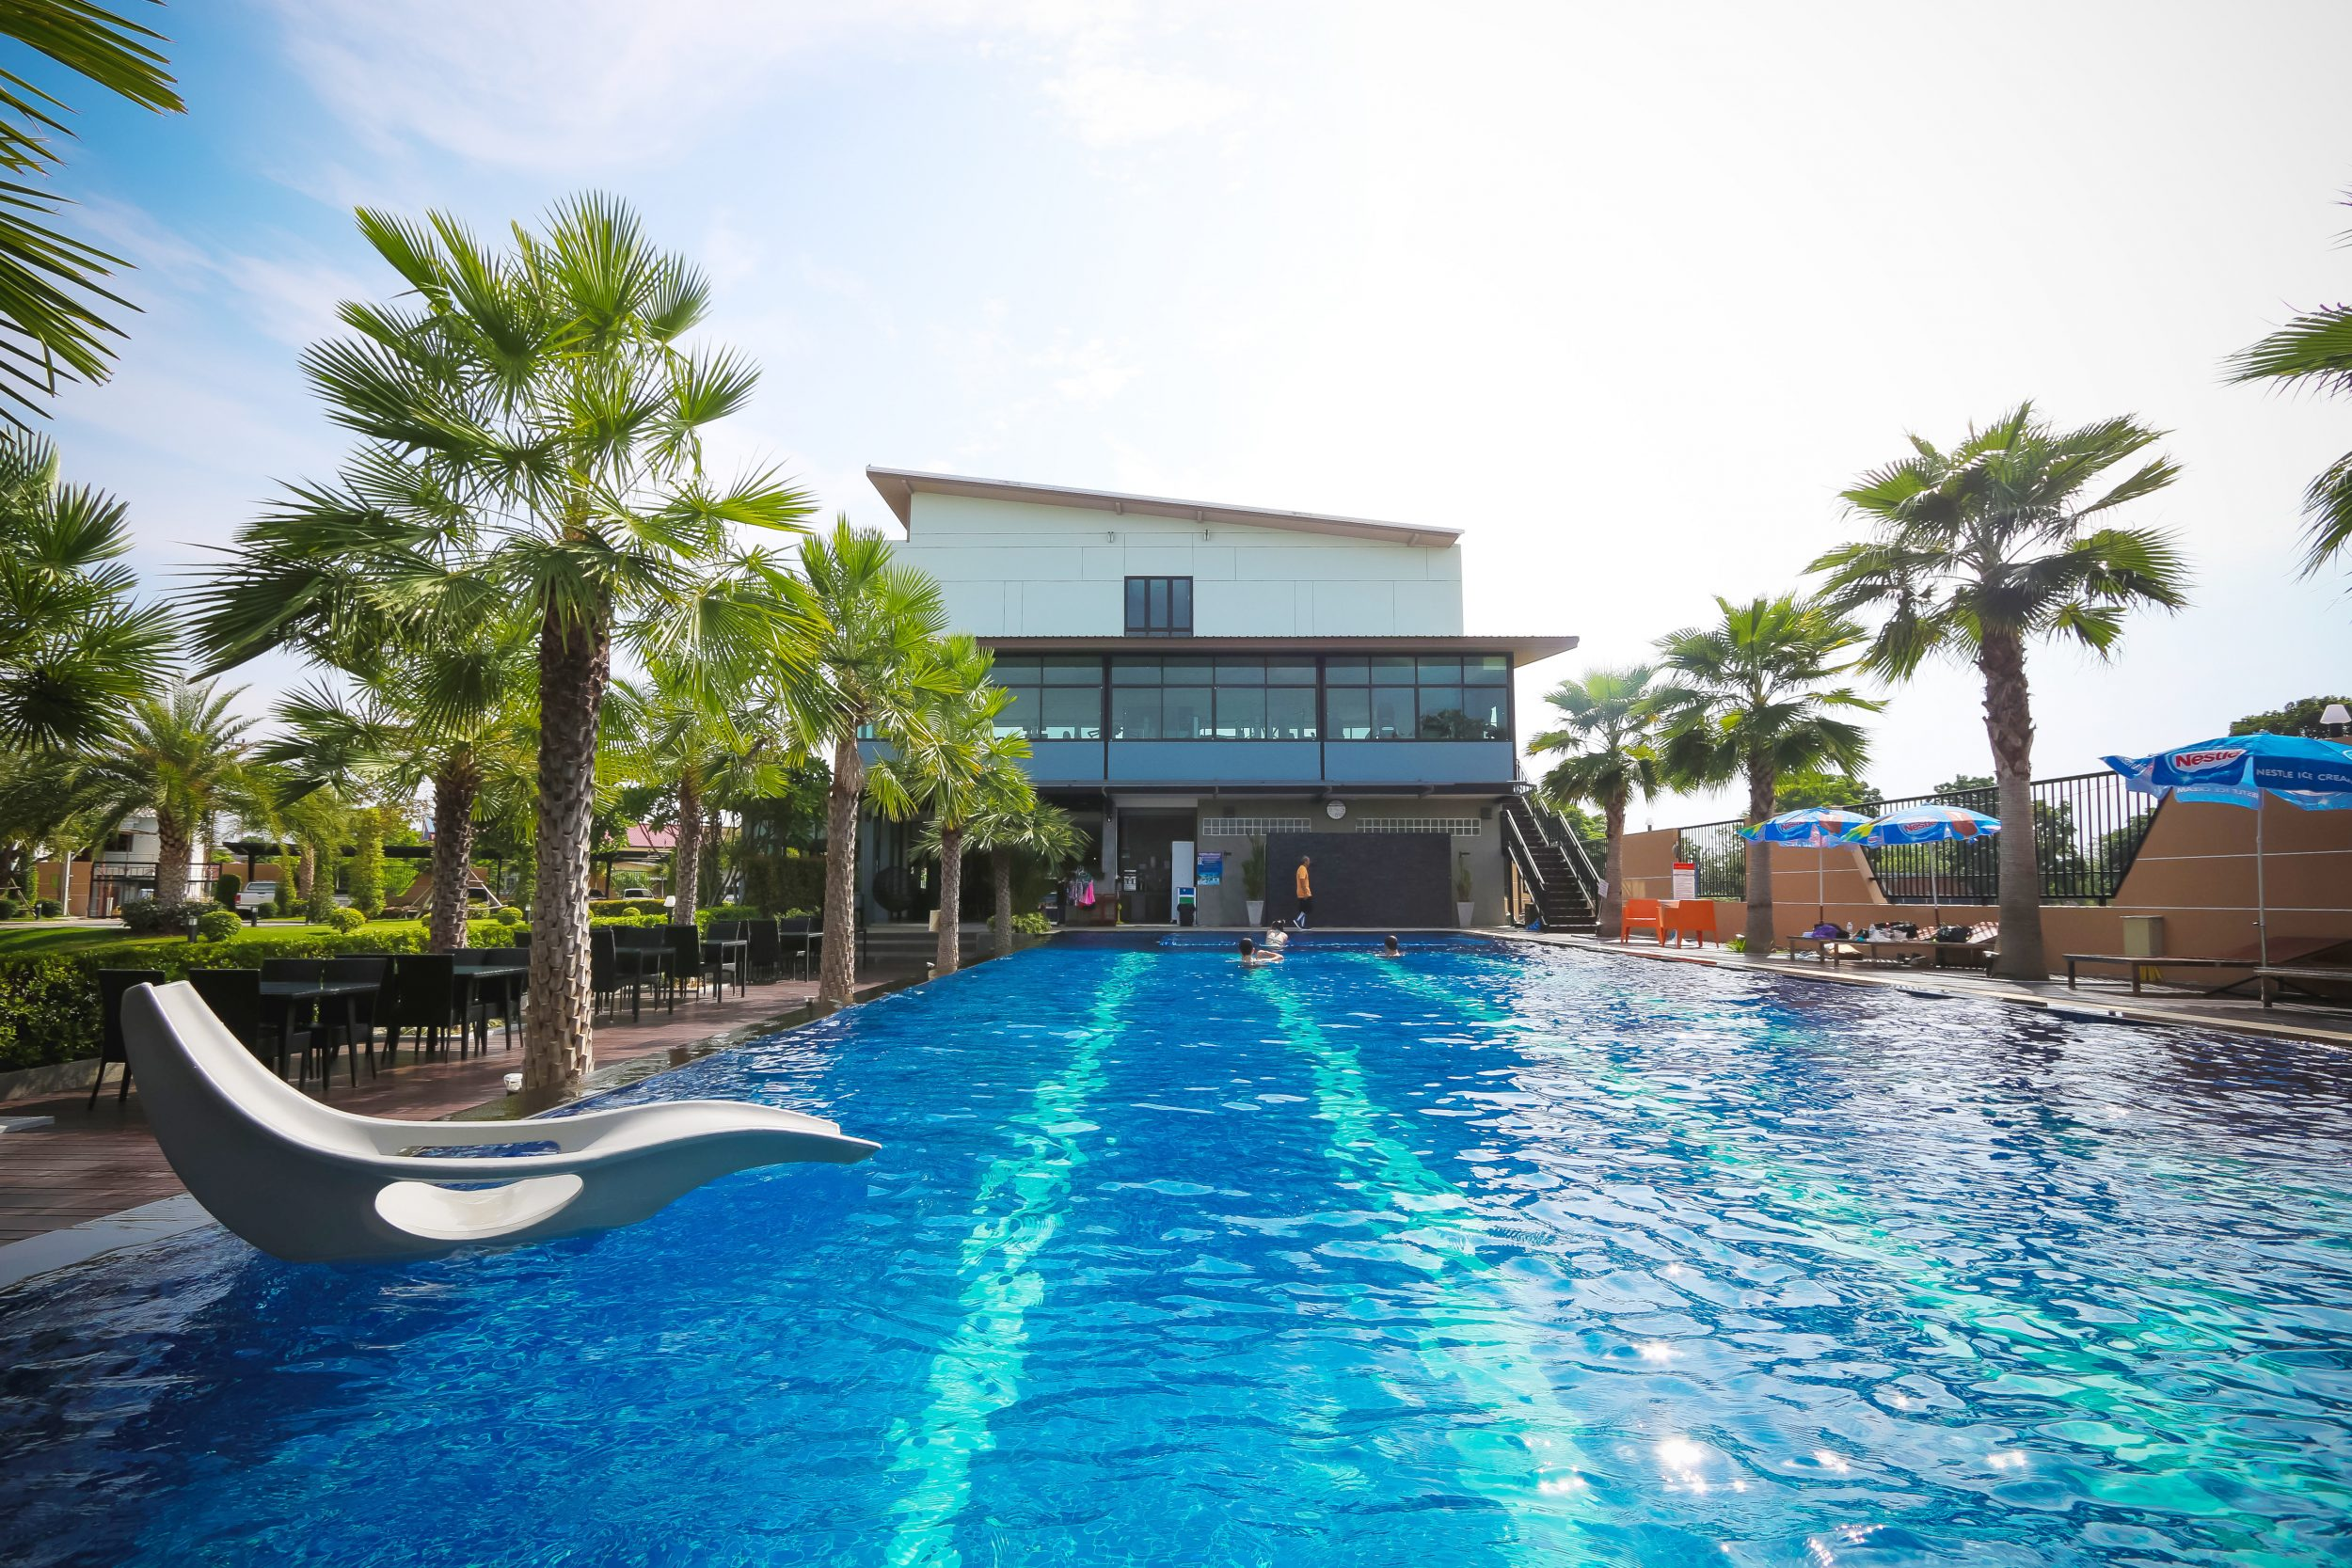 SwimmingpoolBuriram-e1495175054789